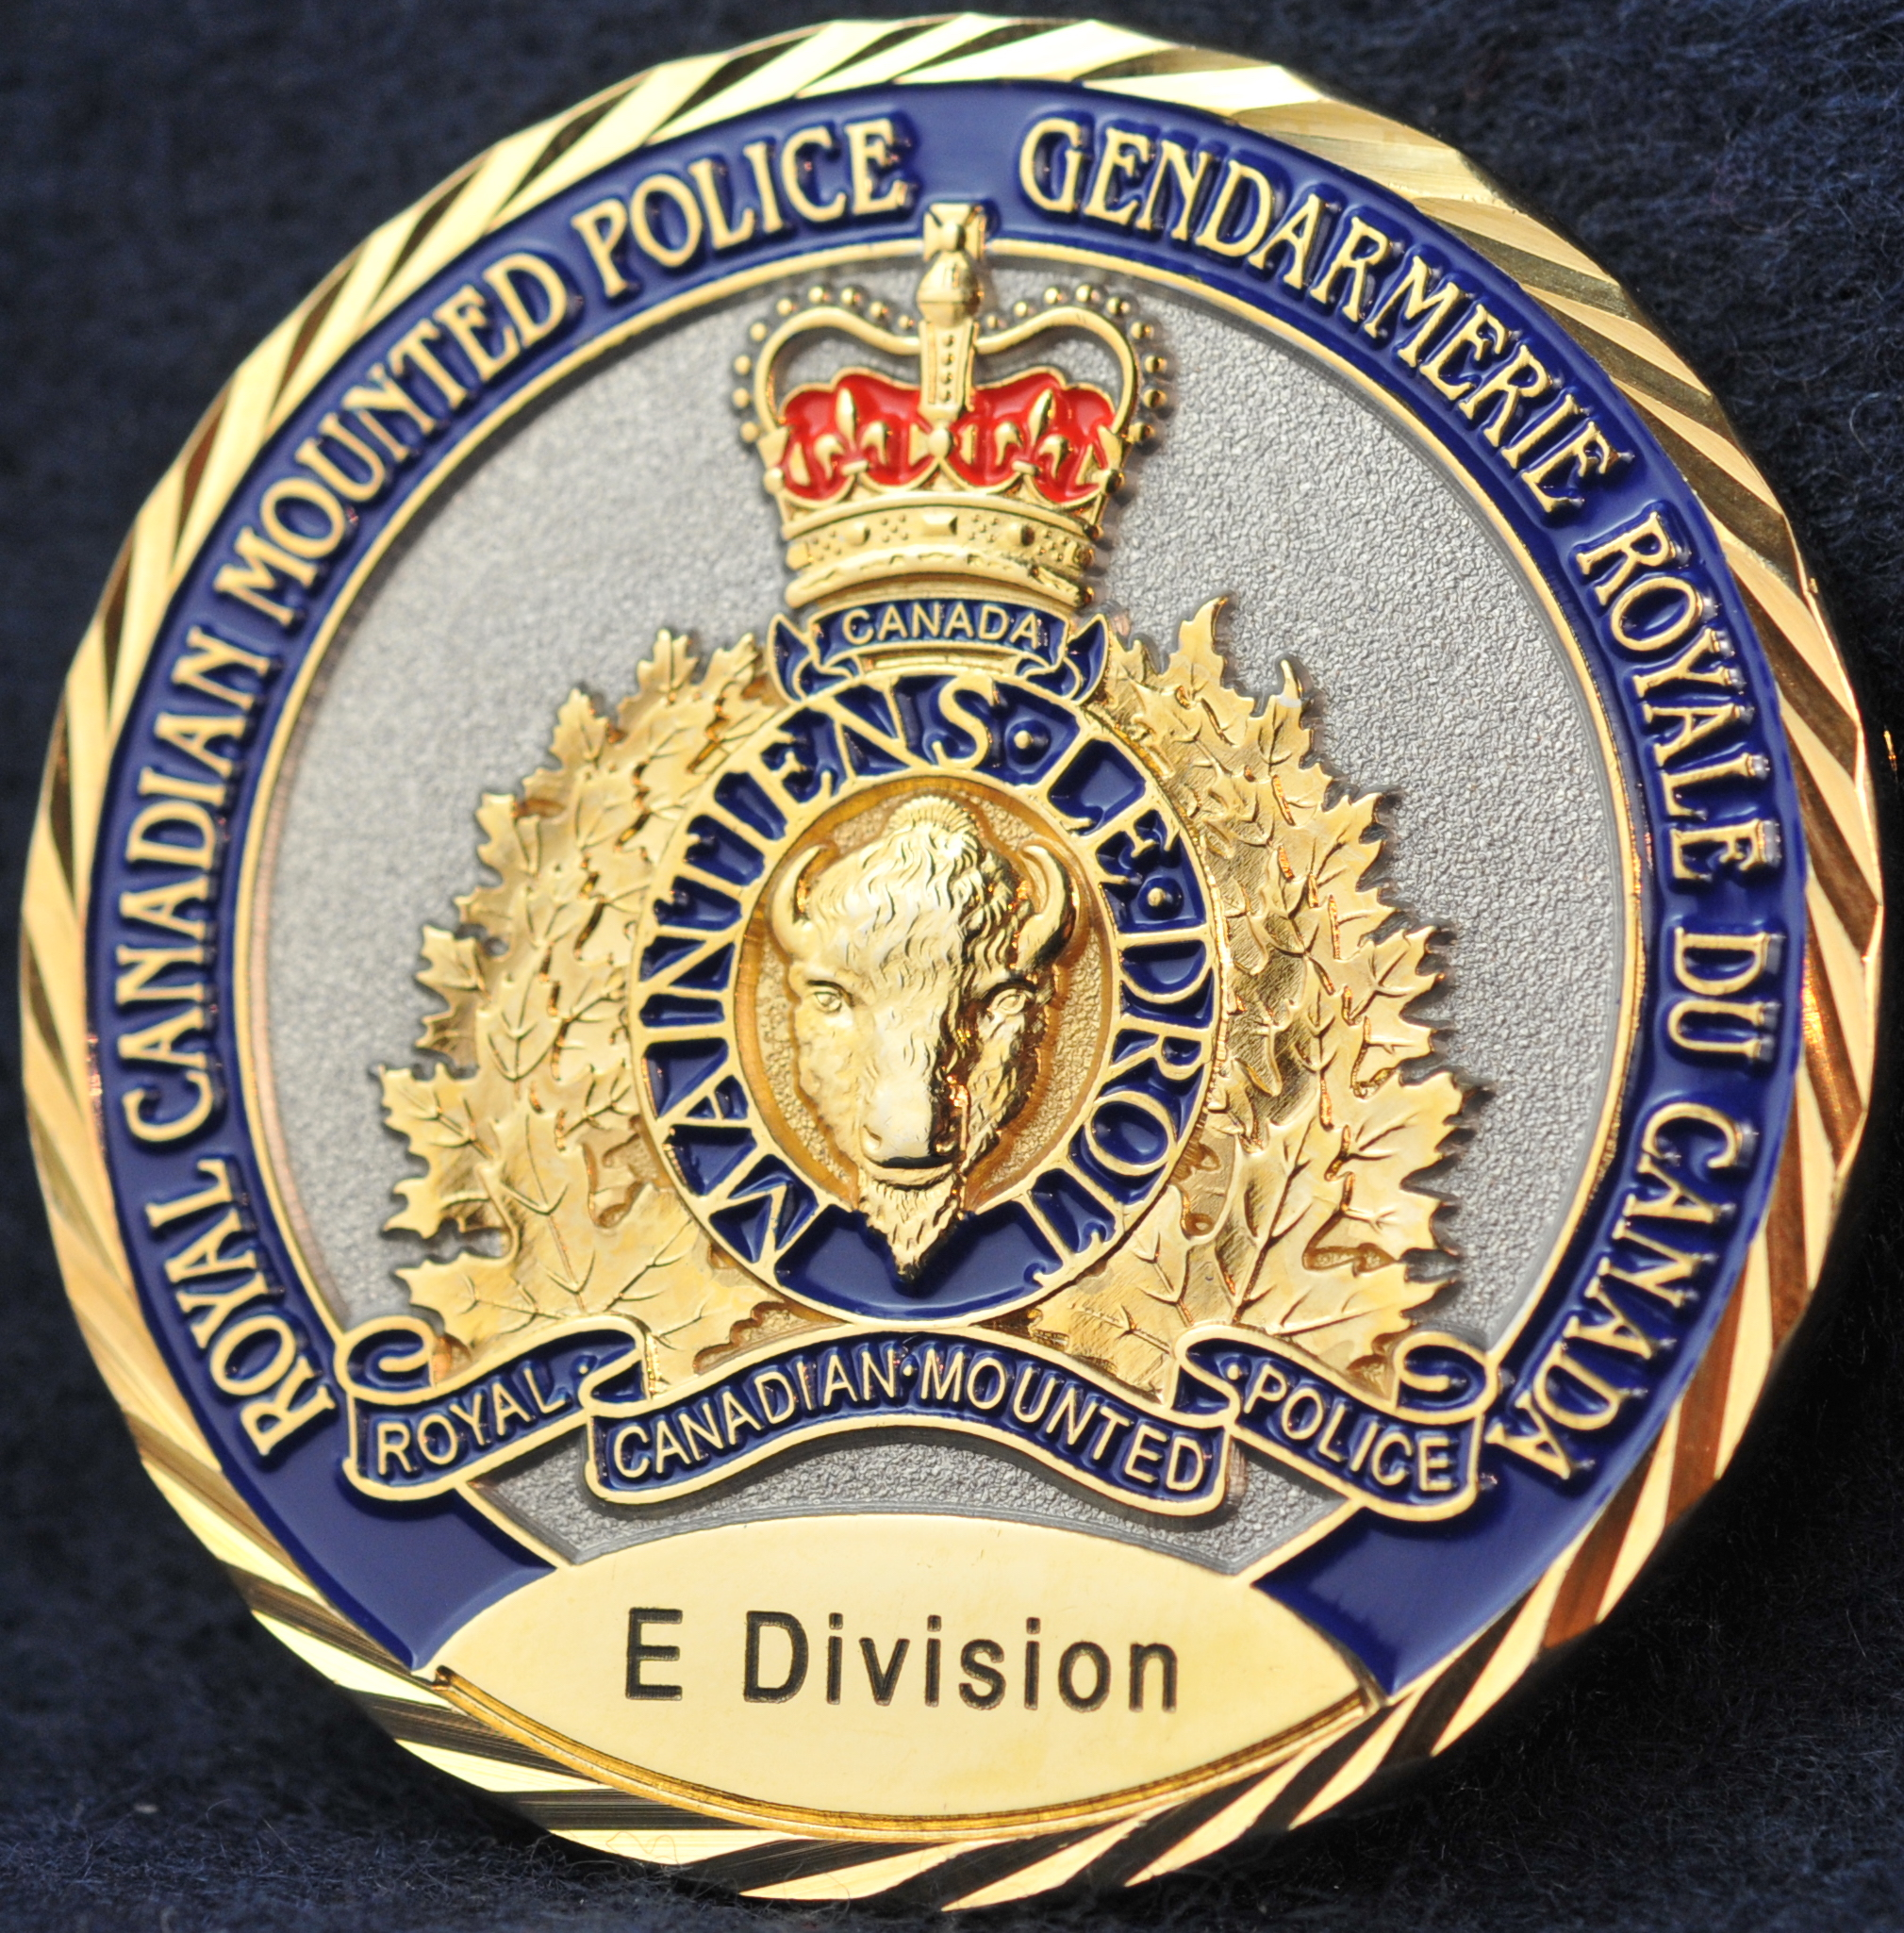 Rcmp E Division Federal Serious And Organized Crime Fsoc